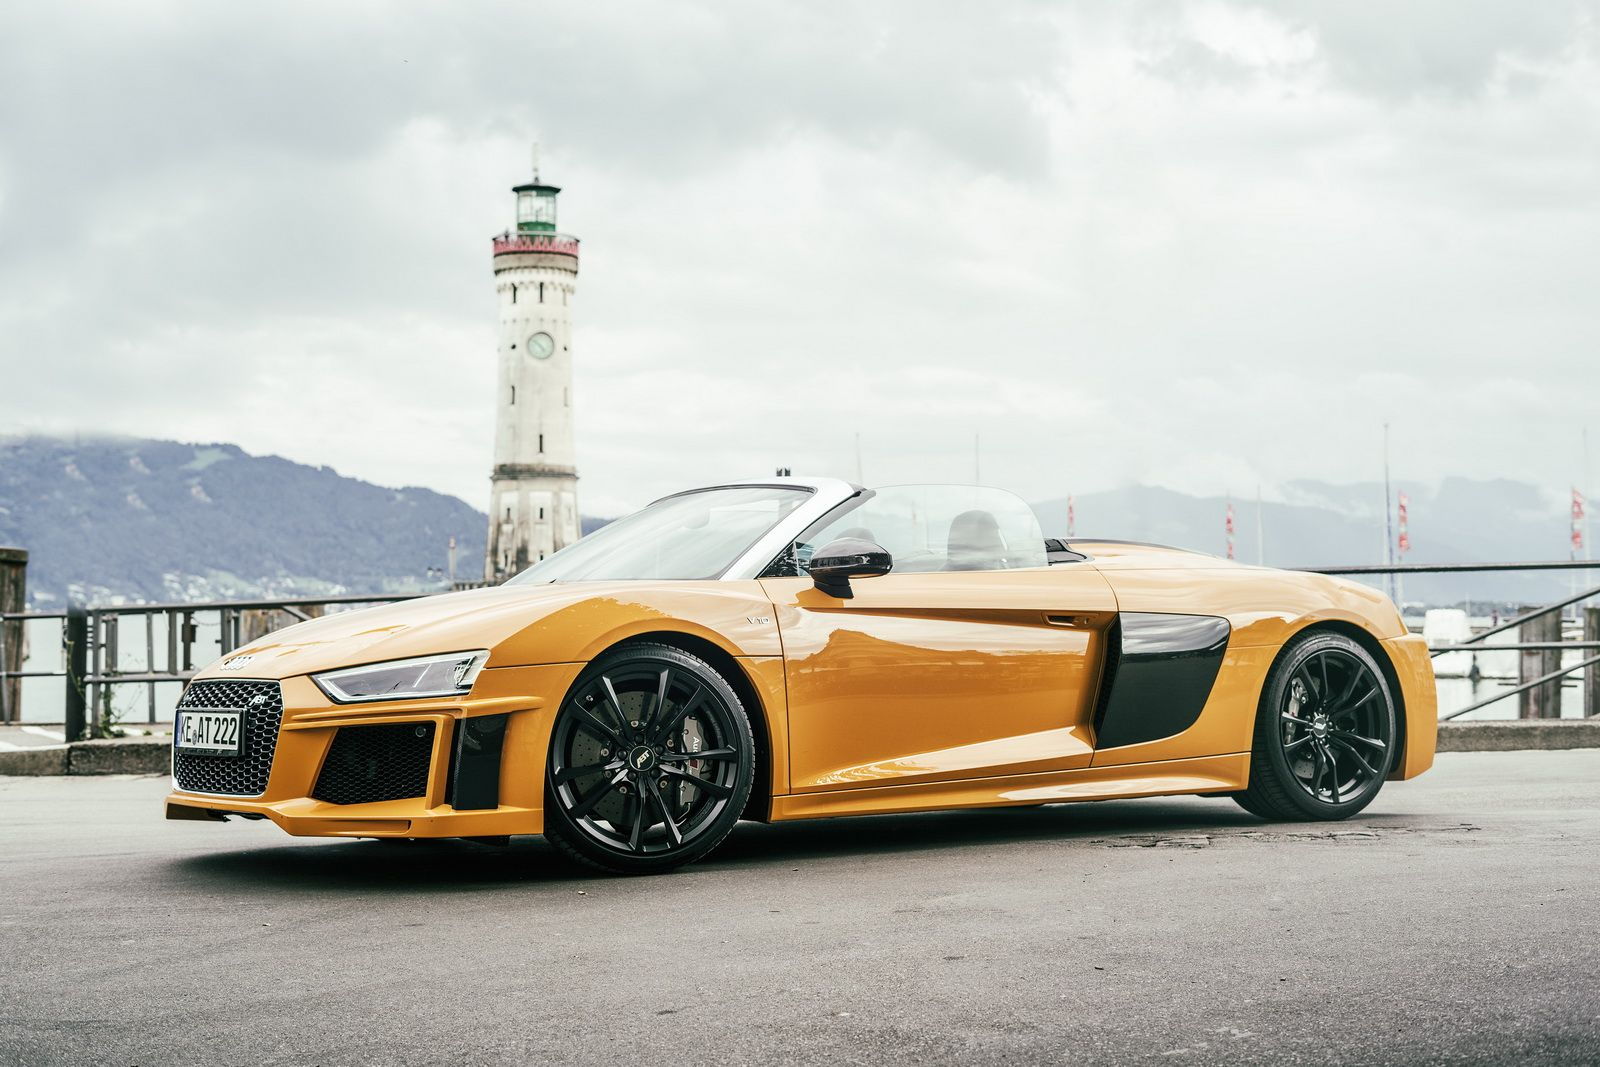 Abt S Audi R8 Matches The V10 Plus Output For 7 400 Audi R8